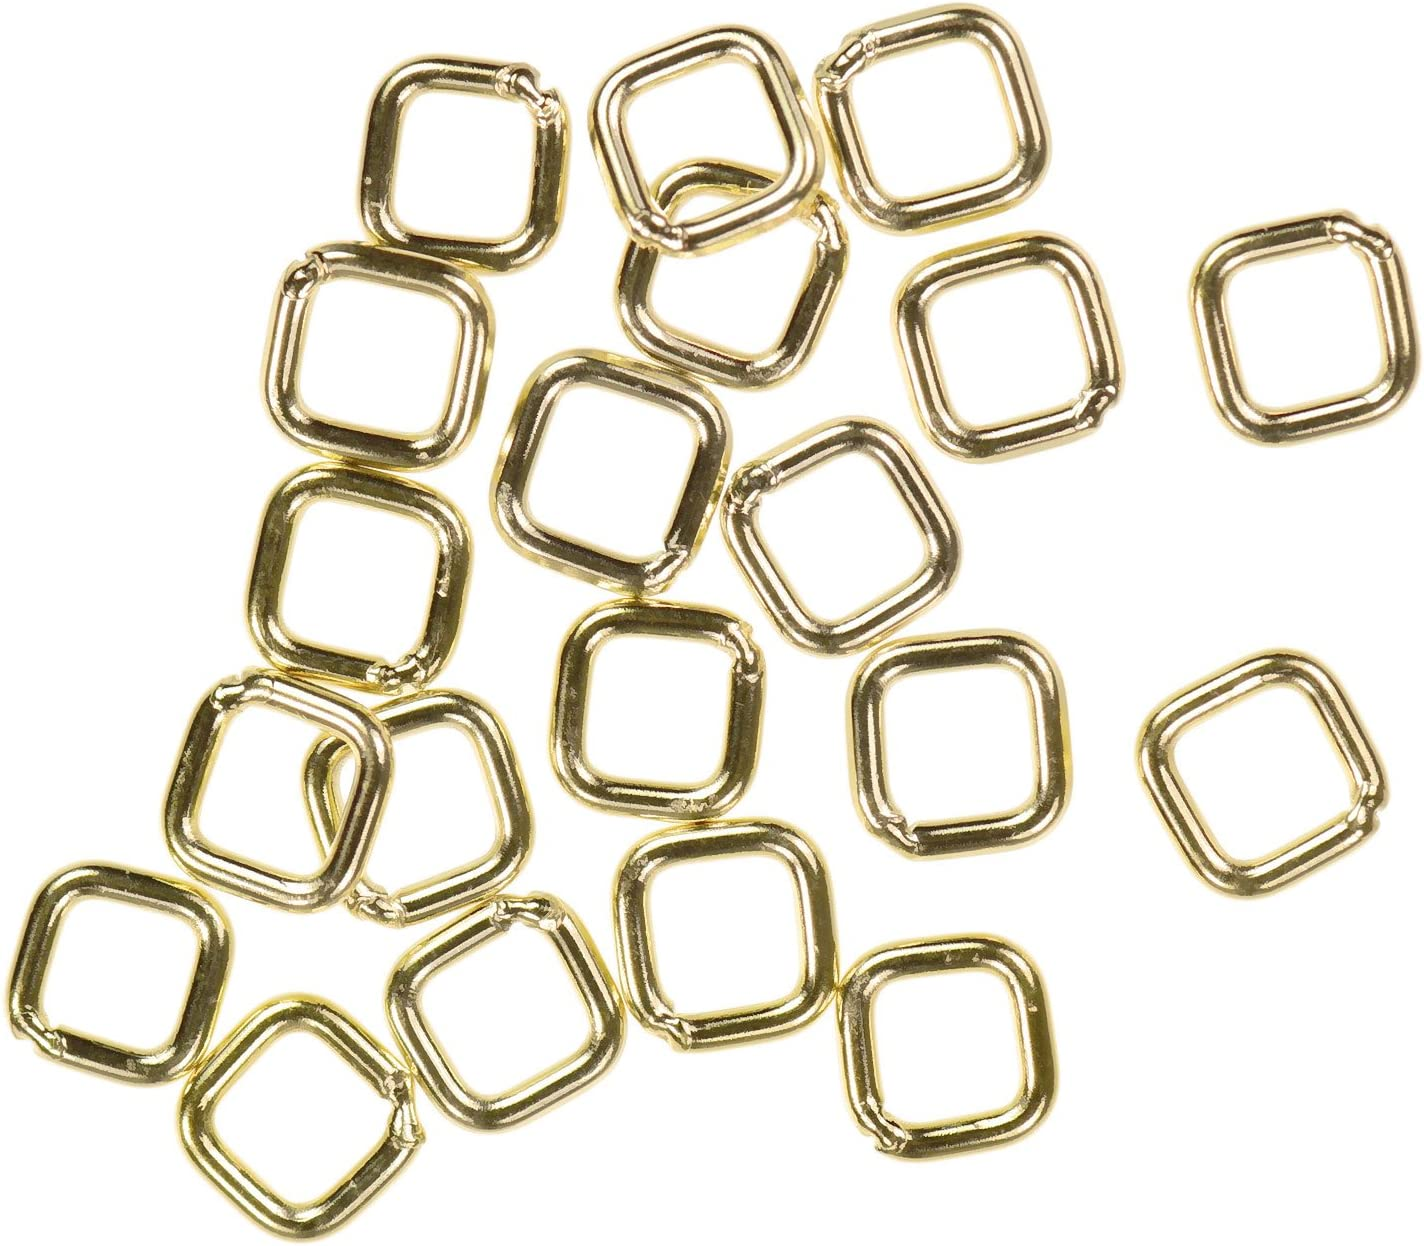 20 Piece 5 mm 14k Gold Filled Closed Jump Rings